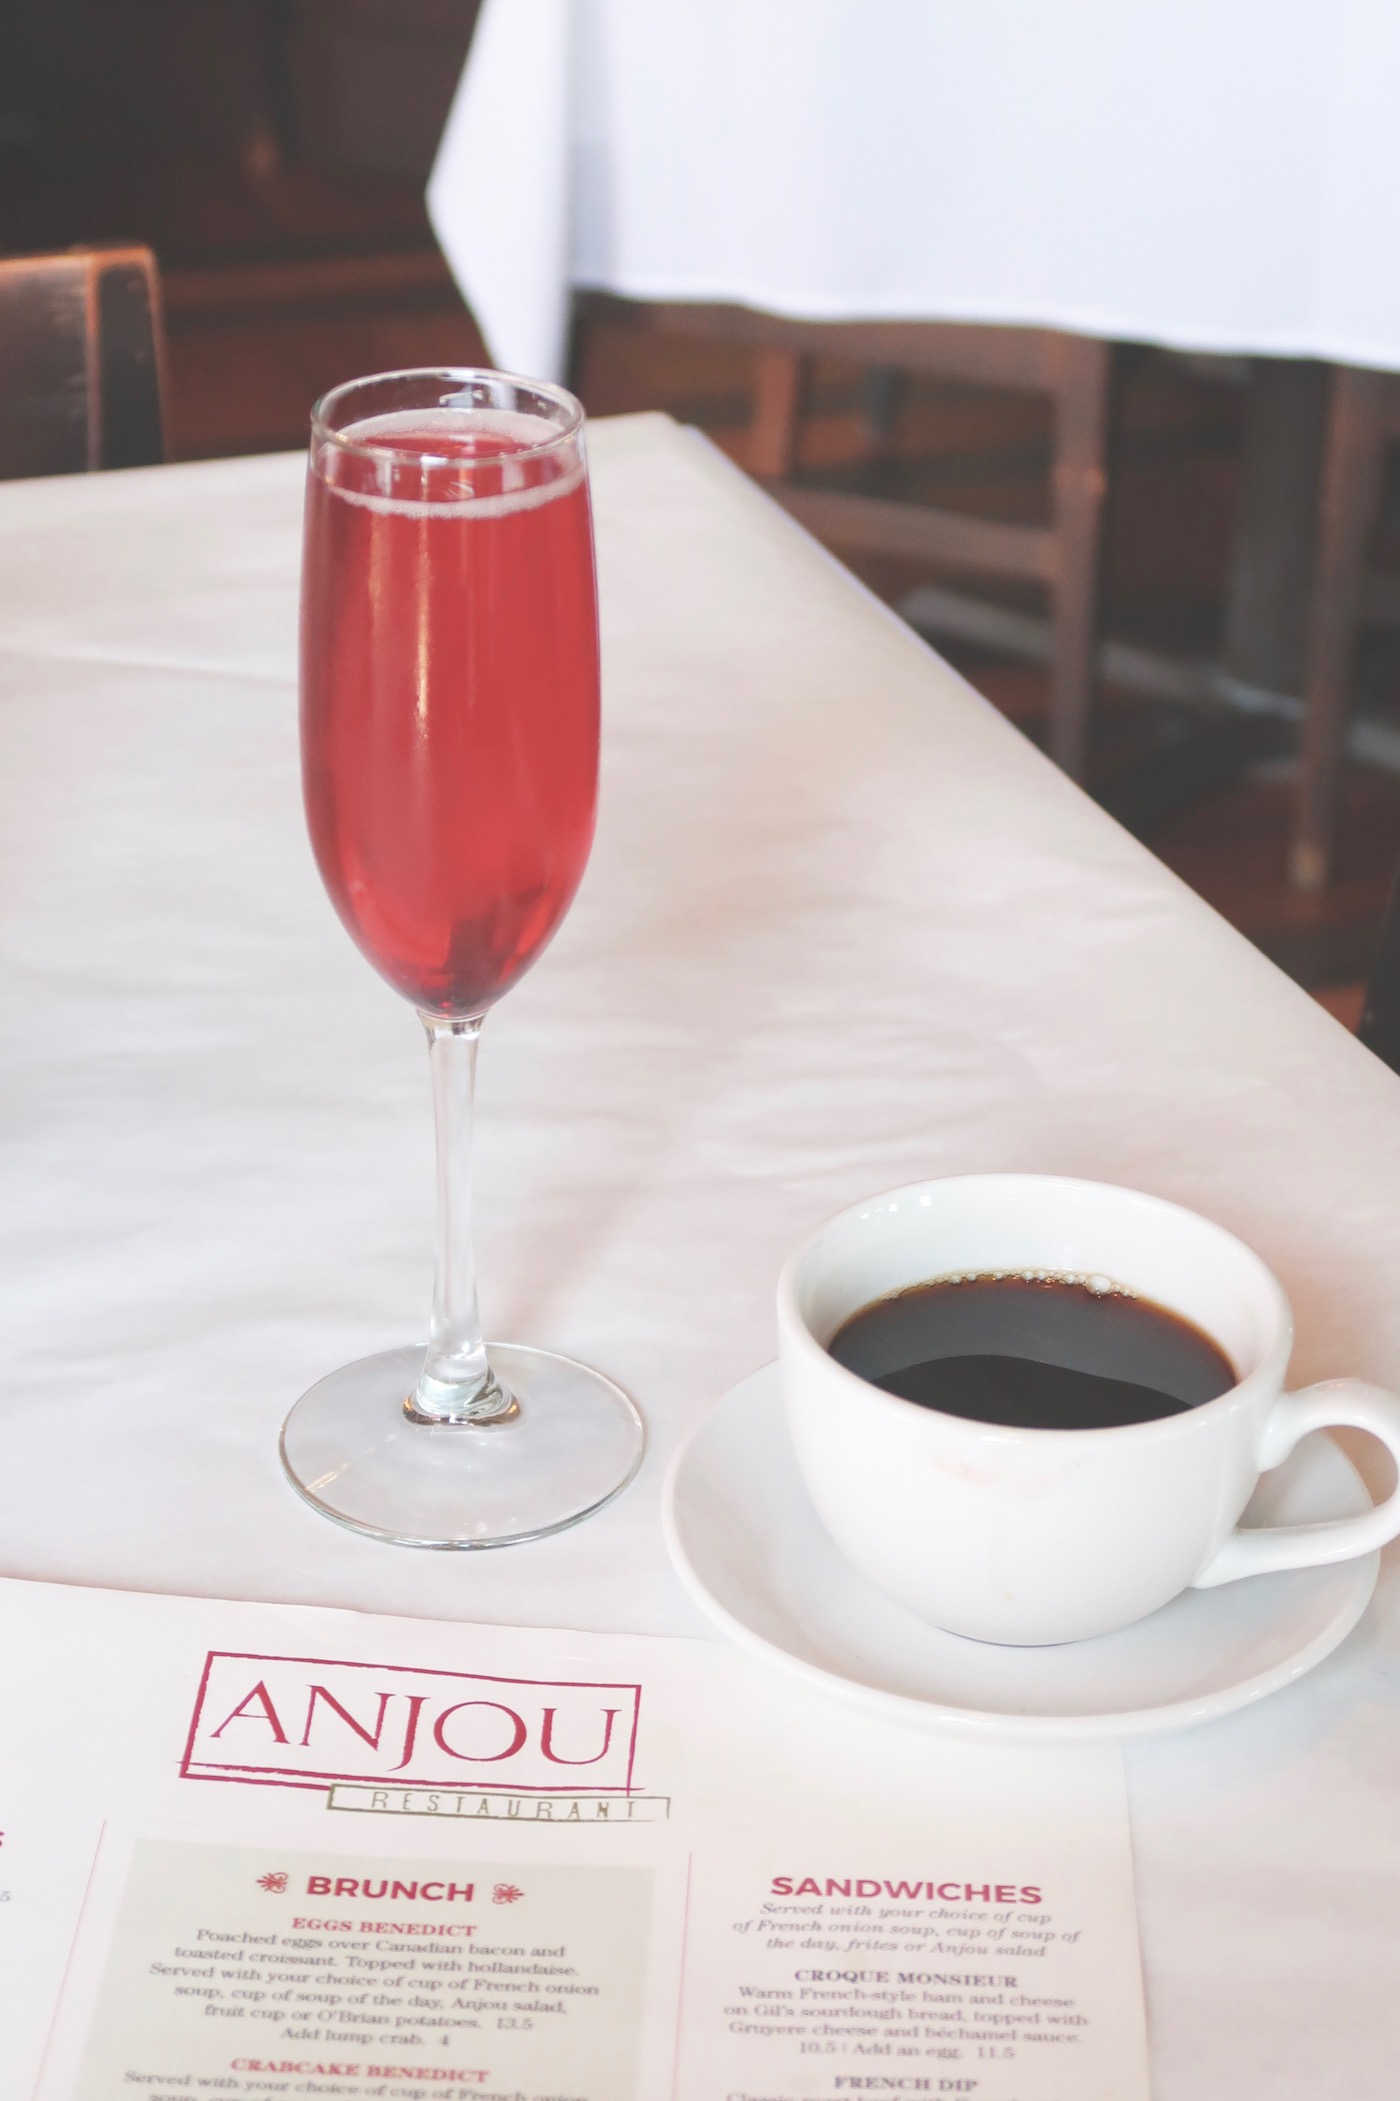 Brunch at Anjou in Ridgeland, Mississippi